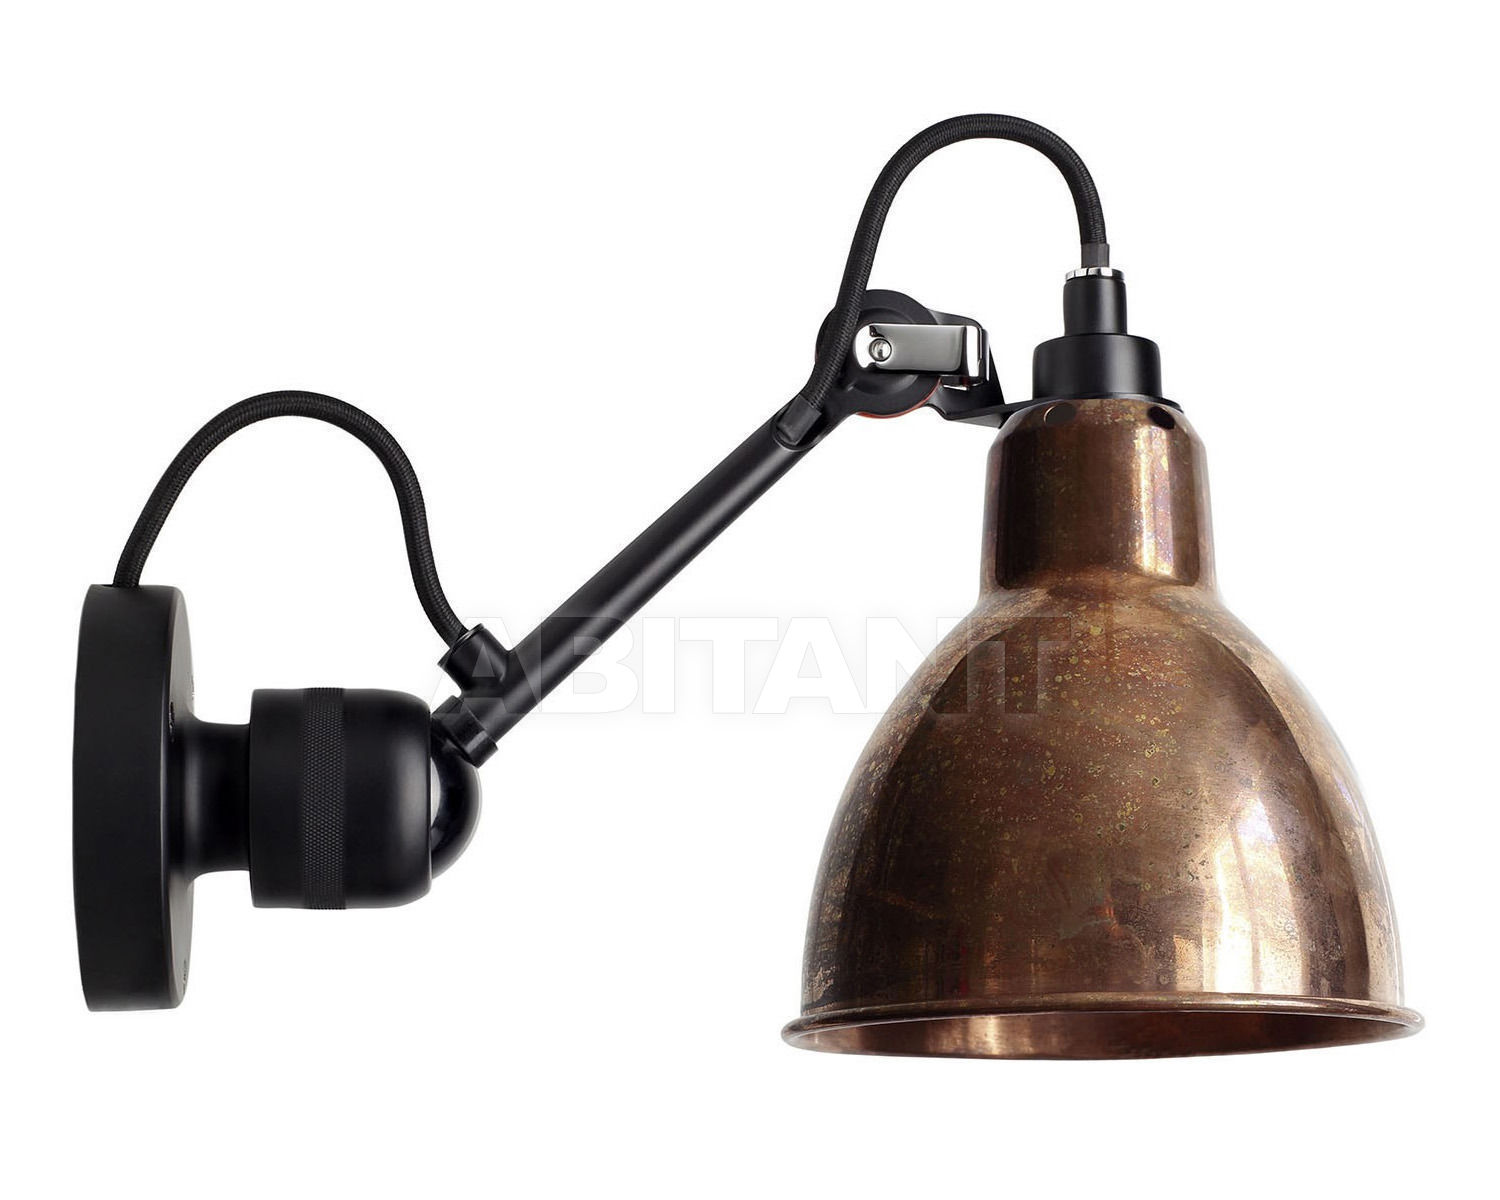 Купить Светильник настенный La Lampe Gras by DCW éditions GRAS LAMPS 304 BL-COP-RAW